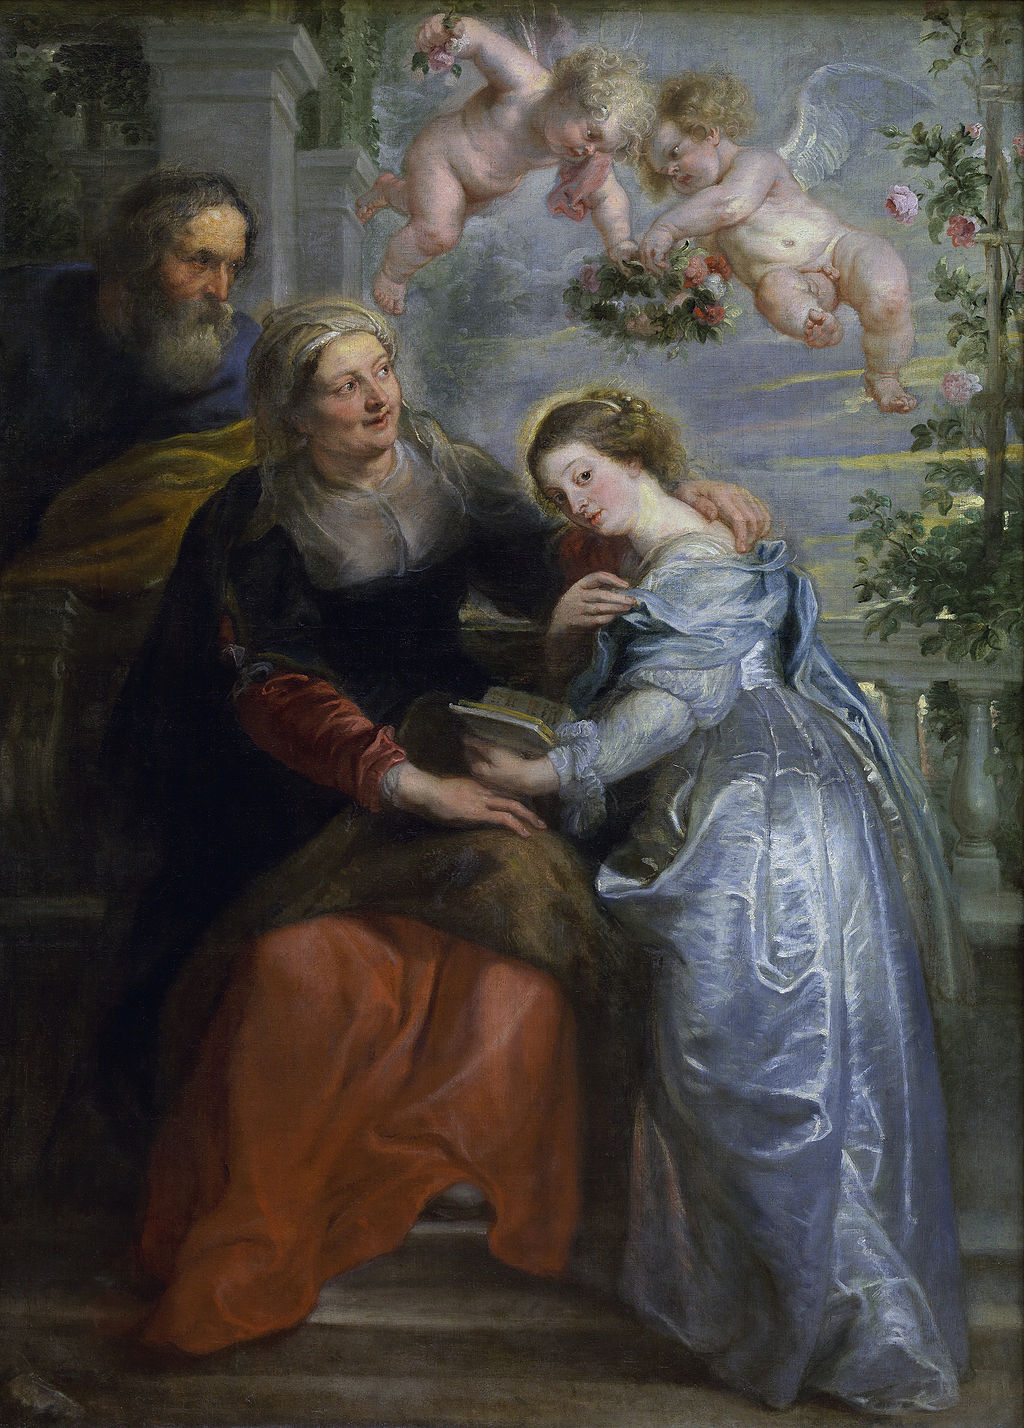 The Education of the Virgin by Peter Paul Rubens in The Royal Museums of Fine Arts in Antwerp